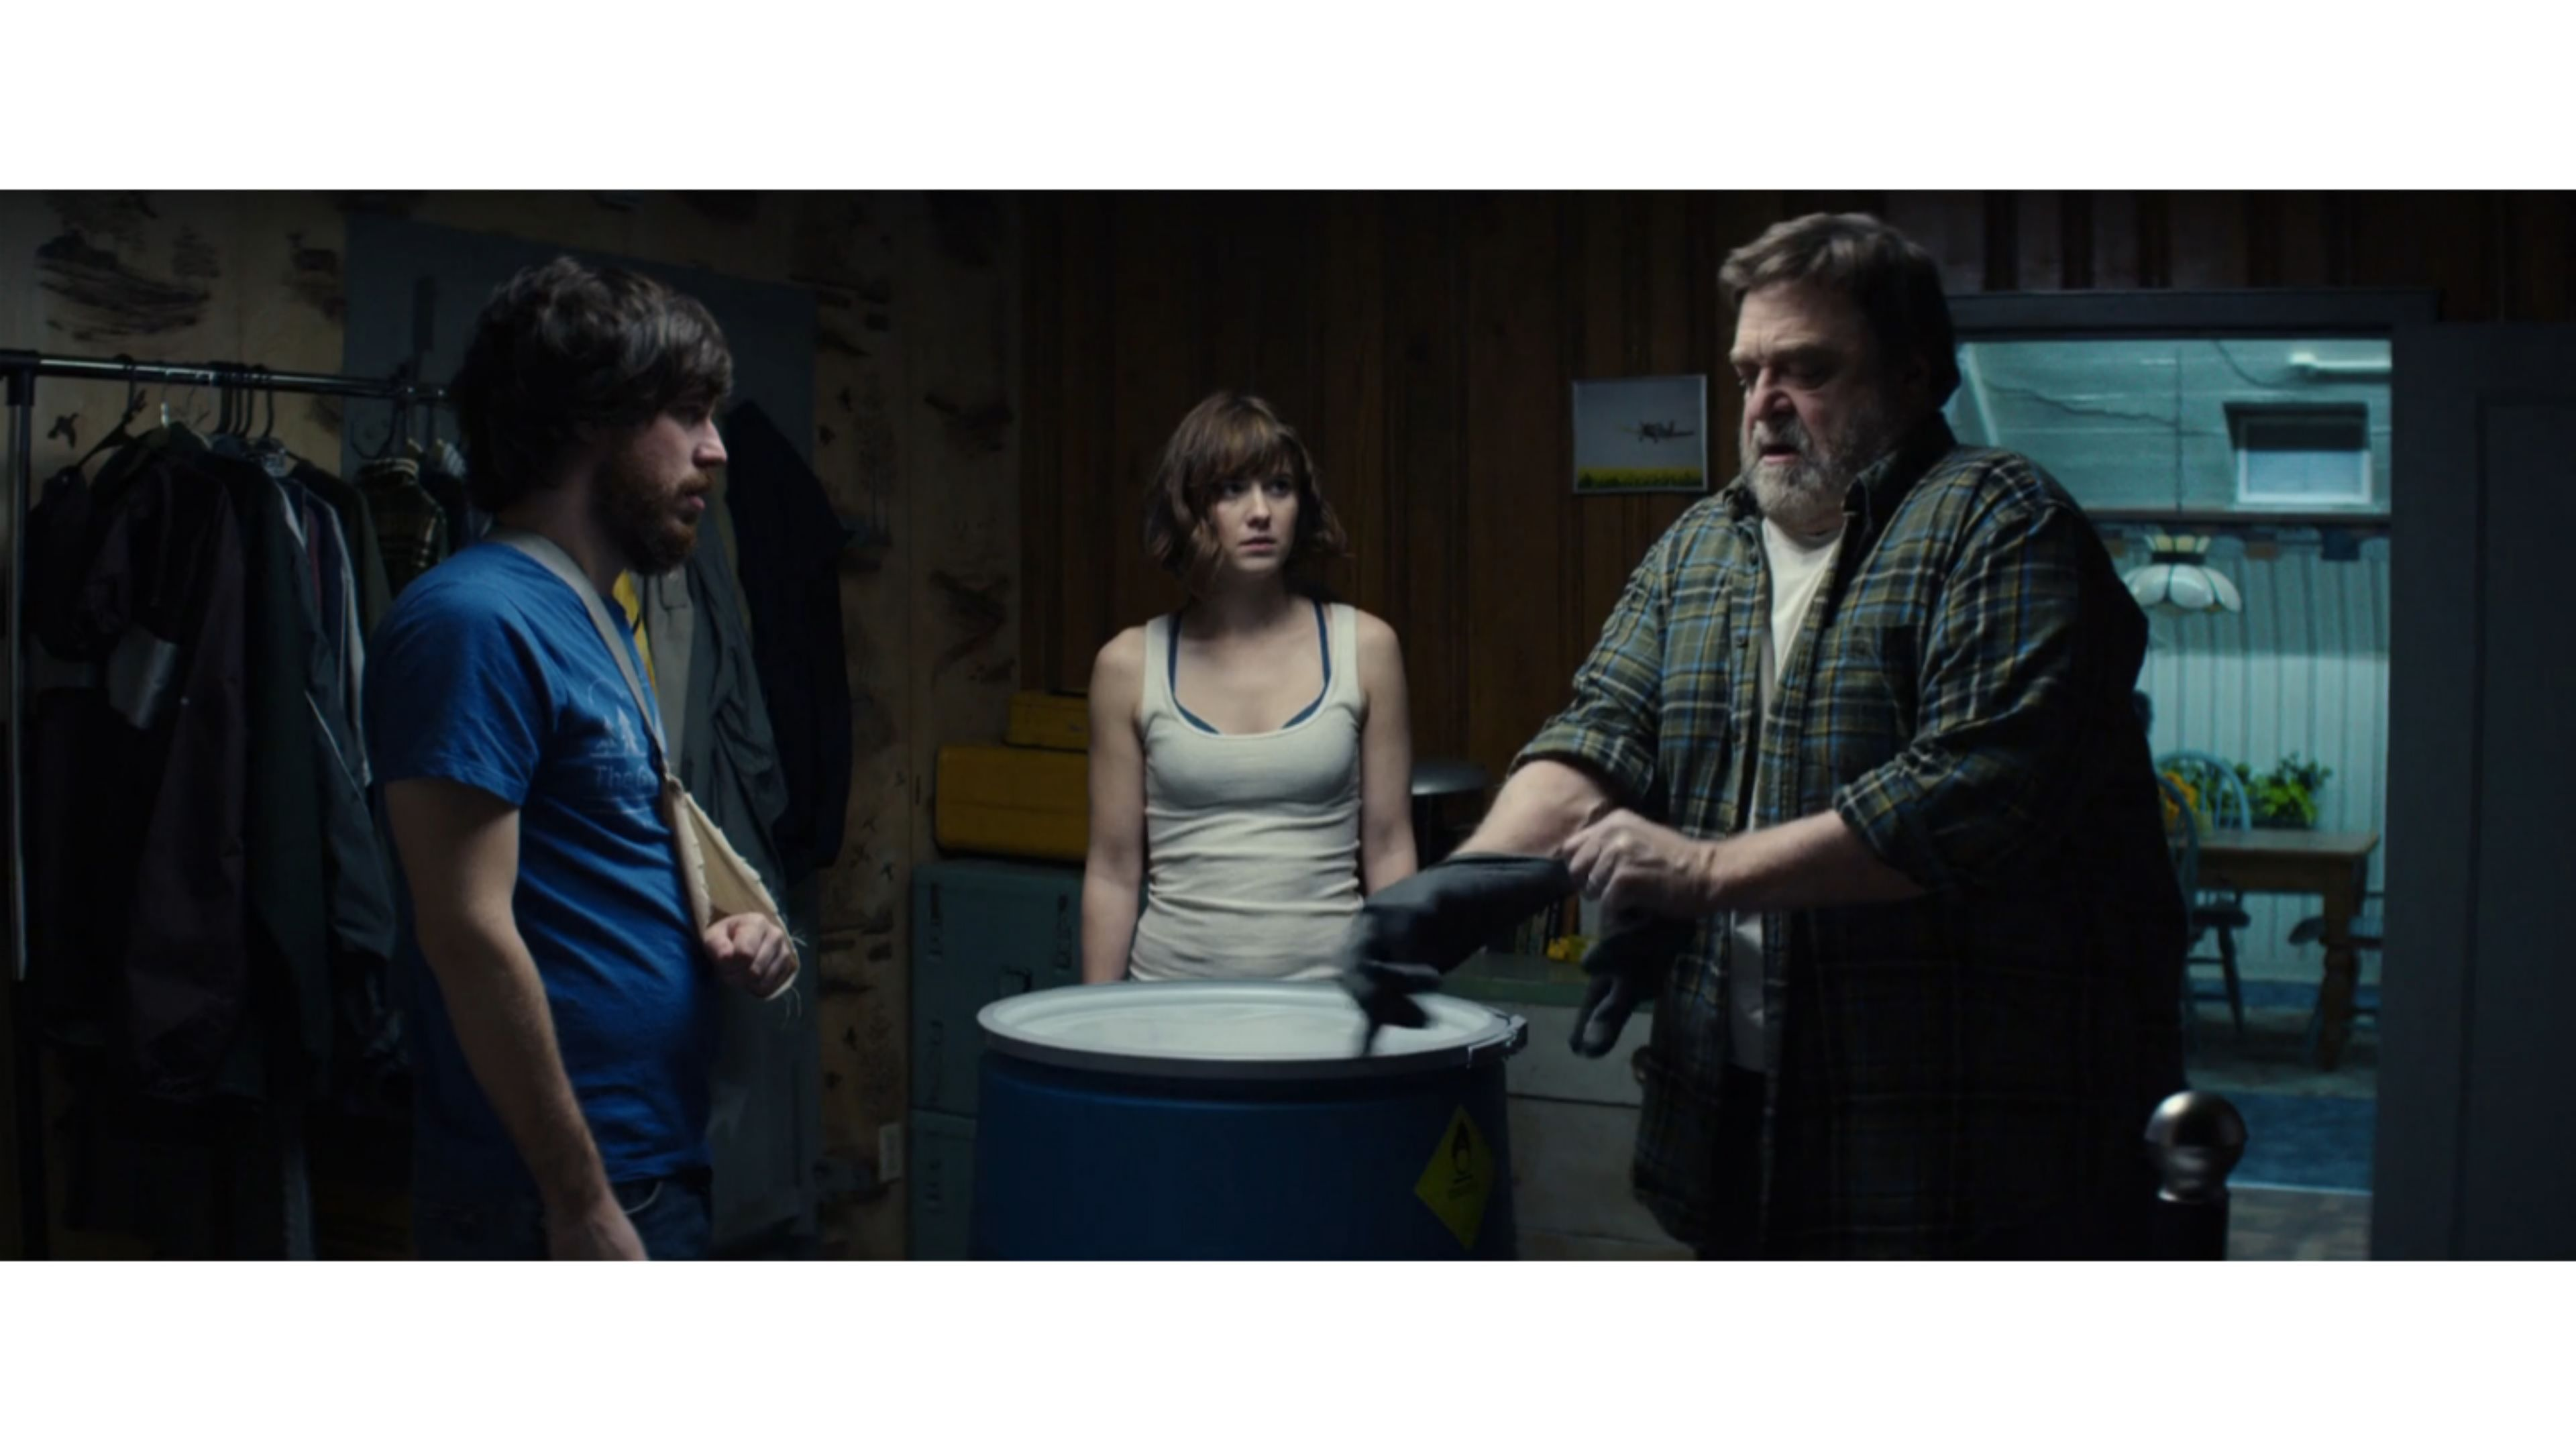 Top Cloverfield Lane wallpaper